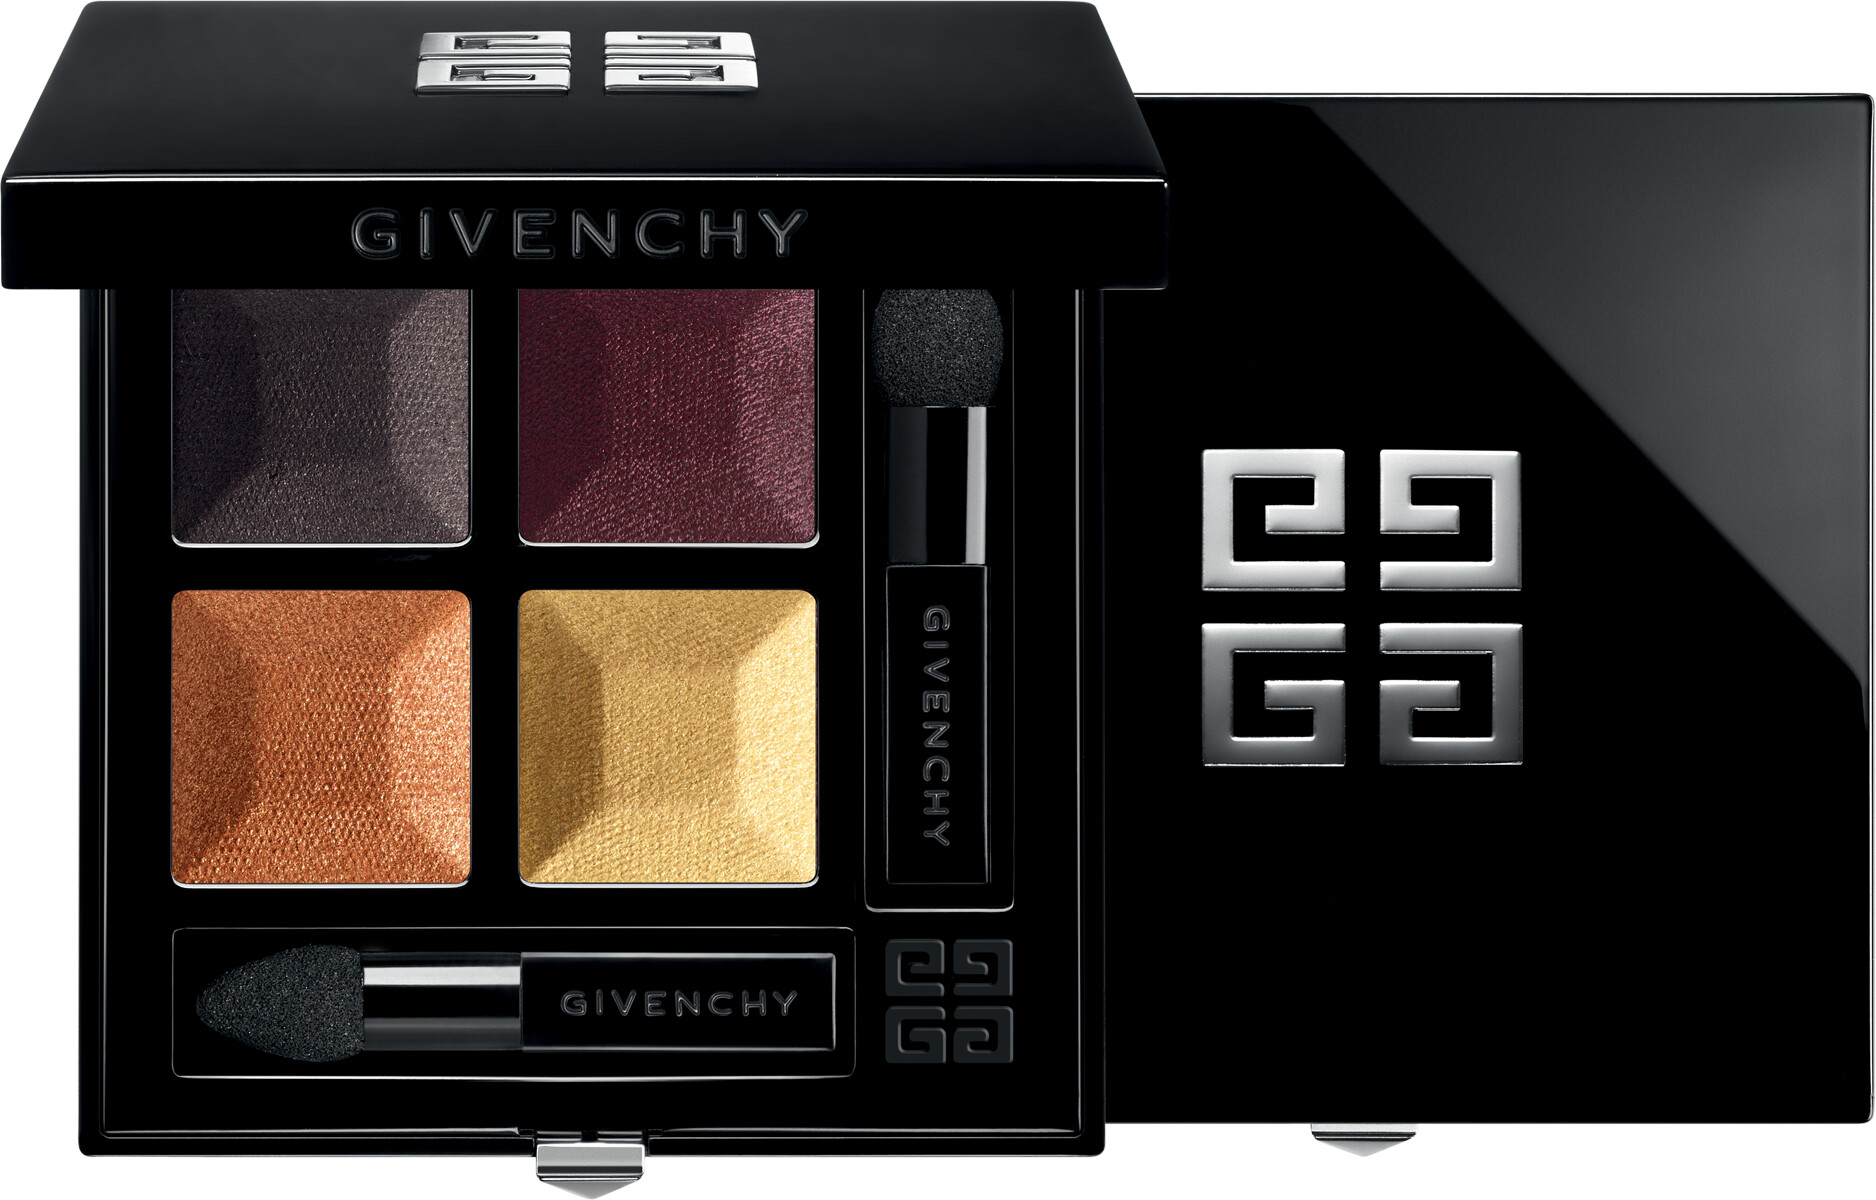 GIVENCHY Prisme Quatuor  Intense & Radiant Eyeshadow 4 Colors 4g 08  Braise